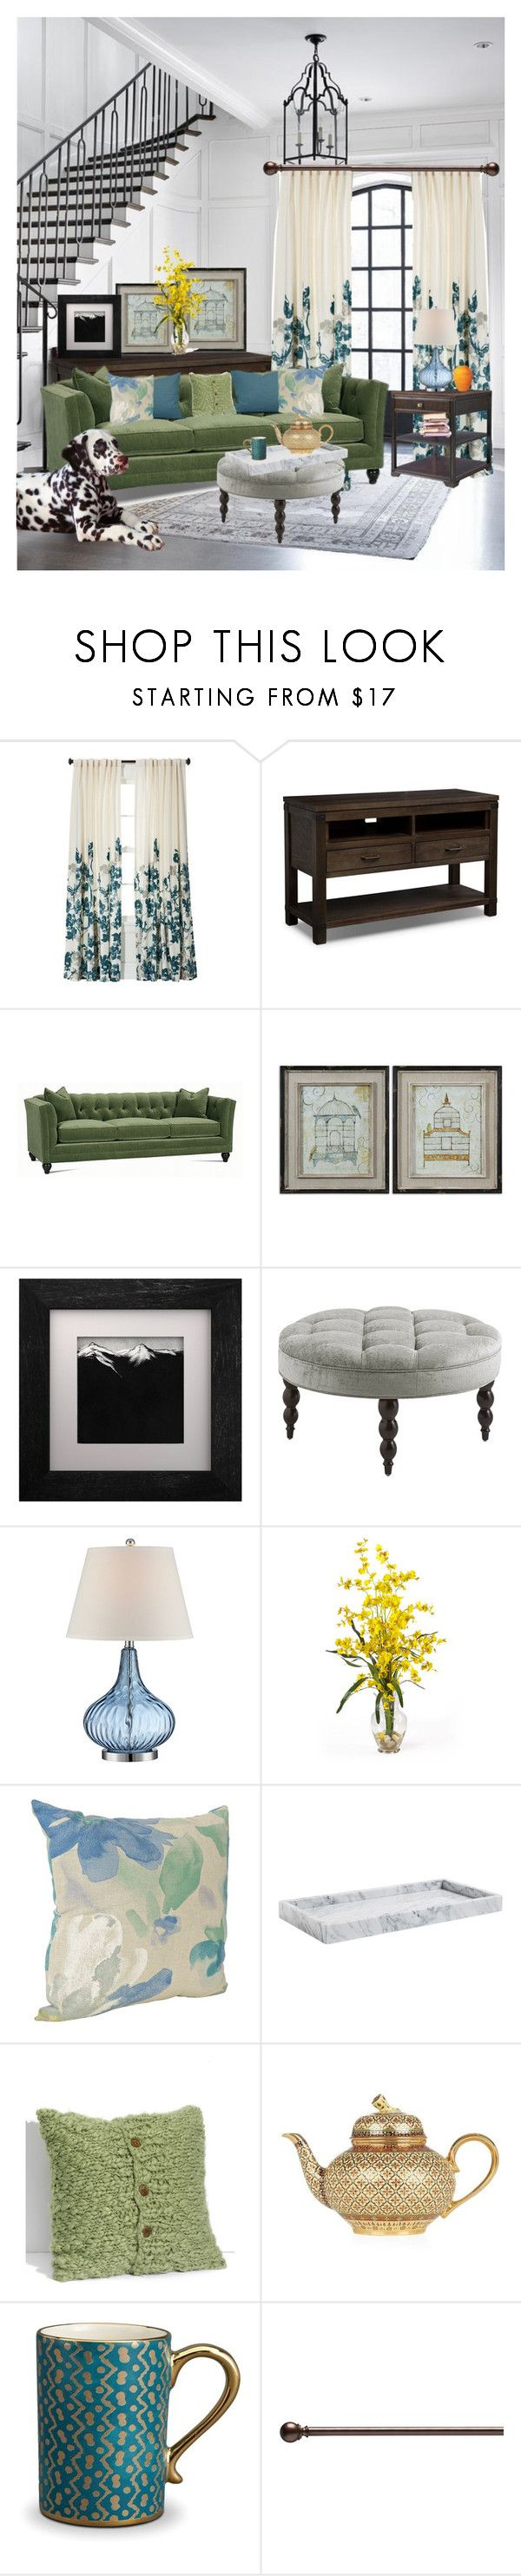 Threshold home decor shop for threshold home decor on polyvore -  Untitled 600 By Anawinchester Liked On Polyvore Featuring Interior Interiors Pier 1 Importsinterior Decoratinginterior